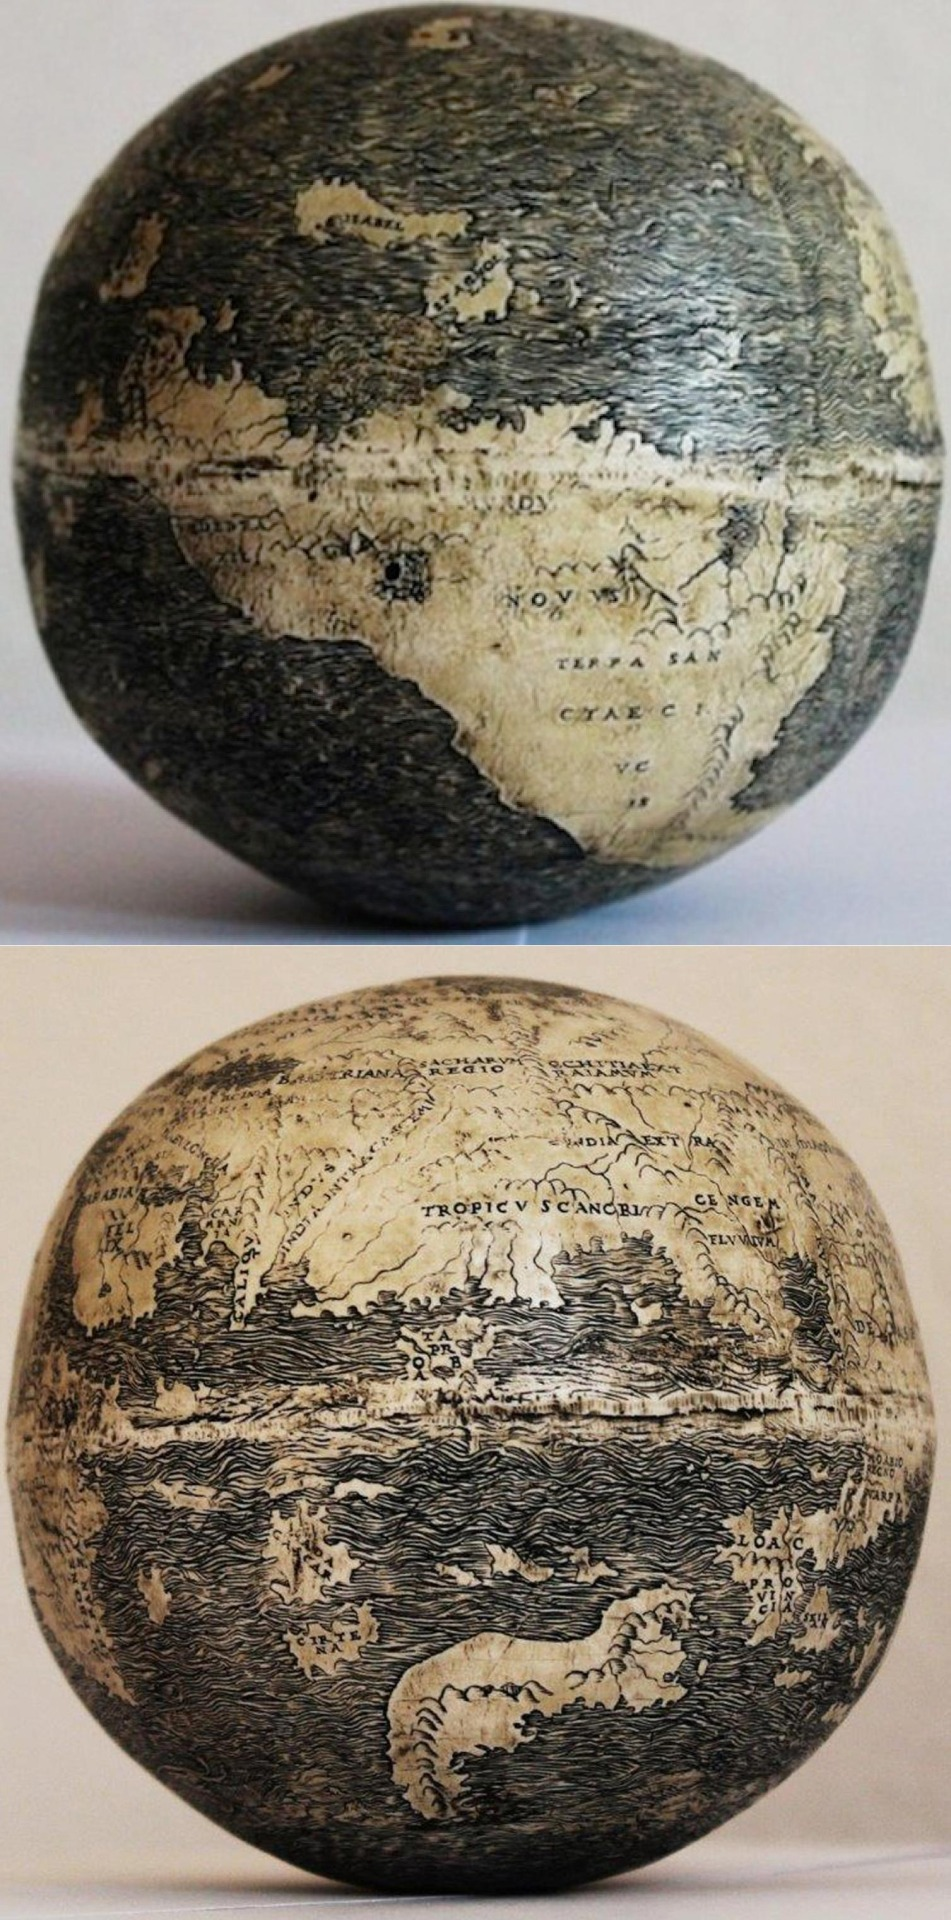 oldest known globe depicting the Americas, made on two lower halves of ostrich eggs 1504